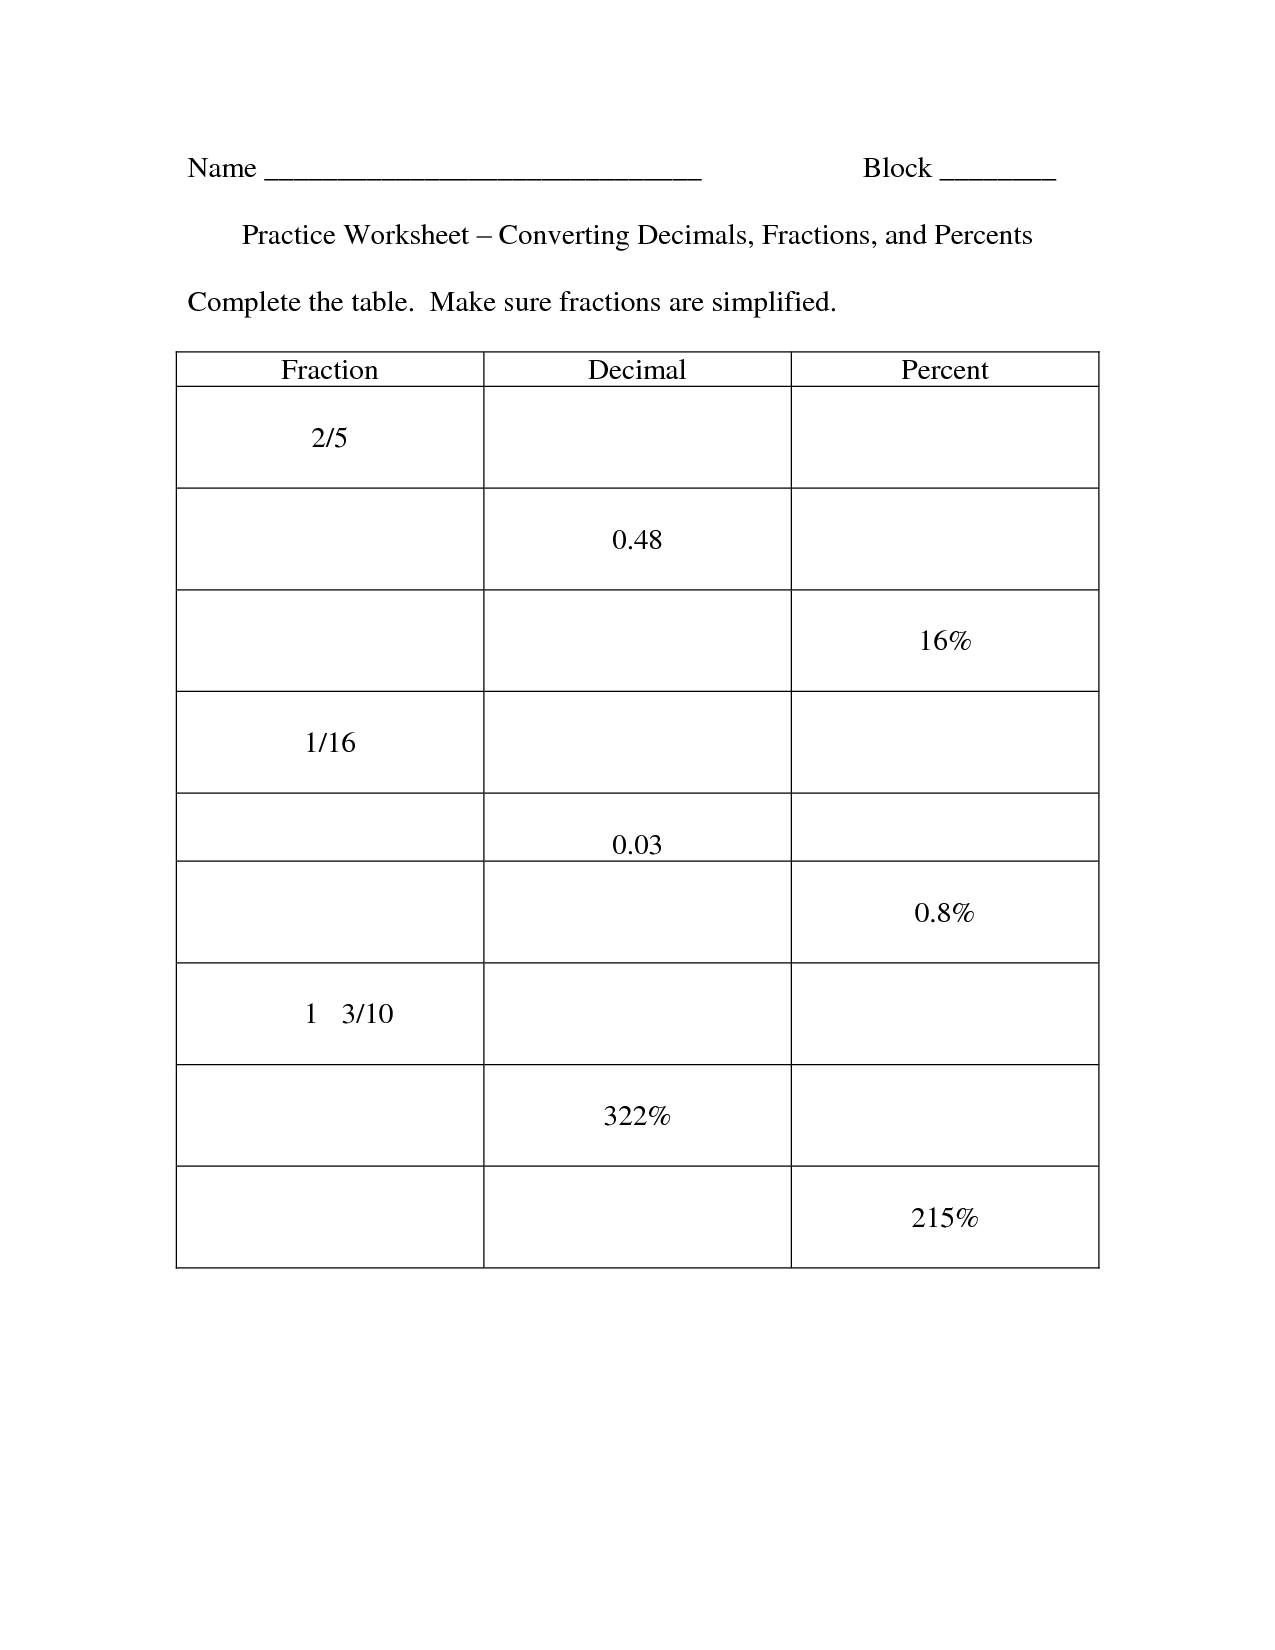 Super Teacher Worksheets Converting Decimals To Fractions